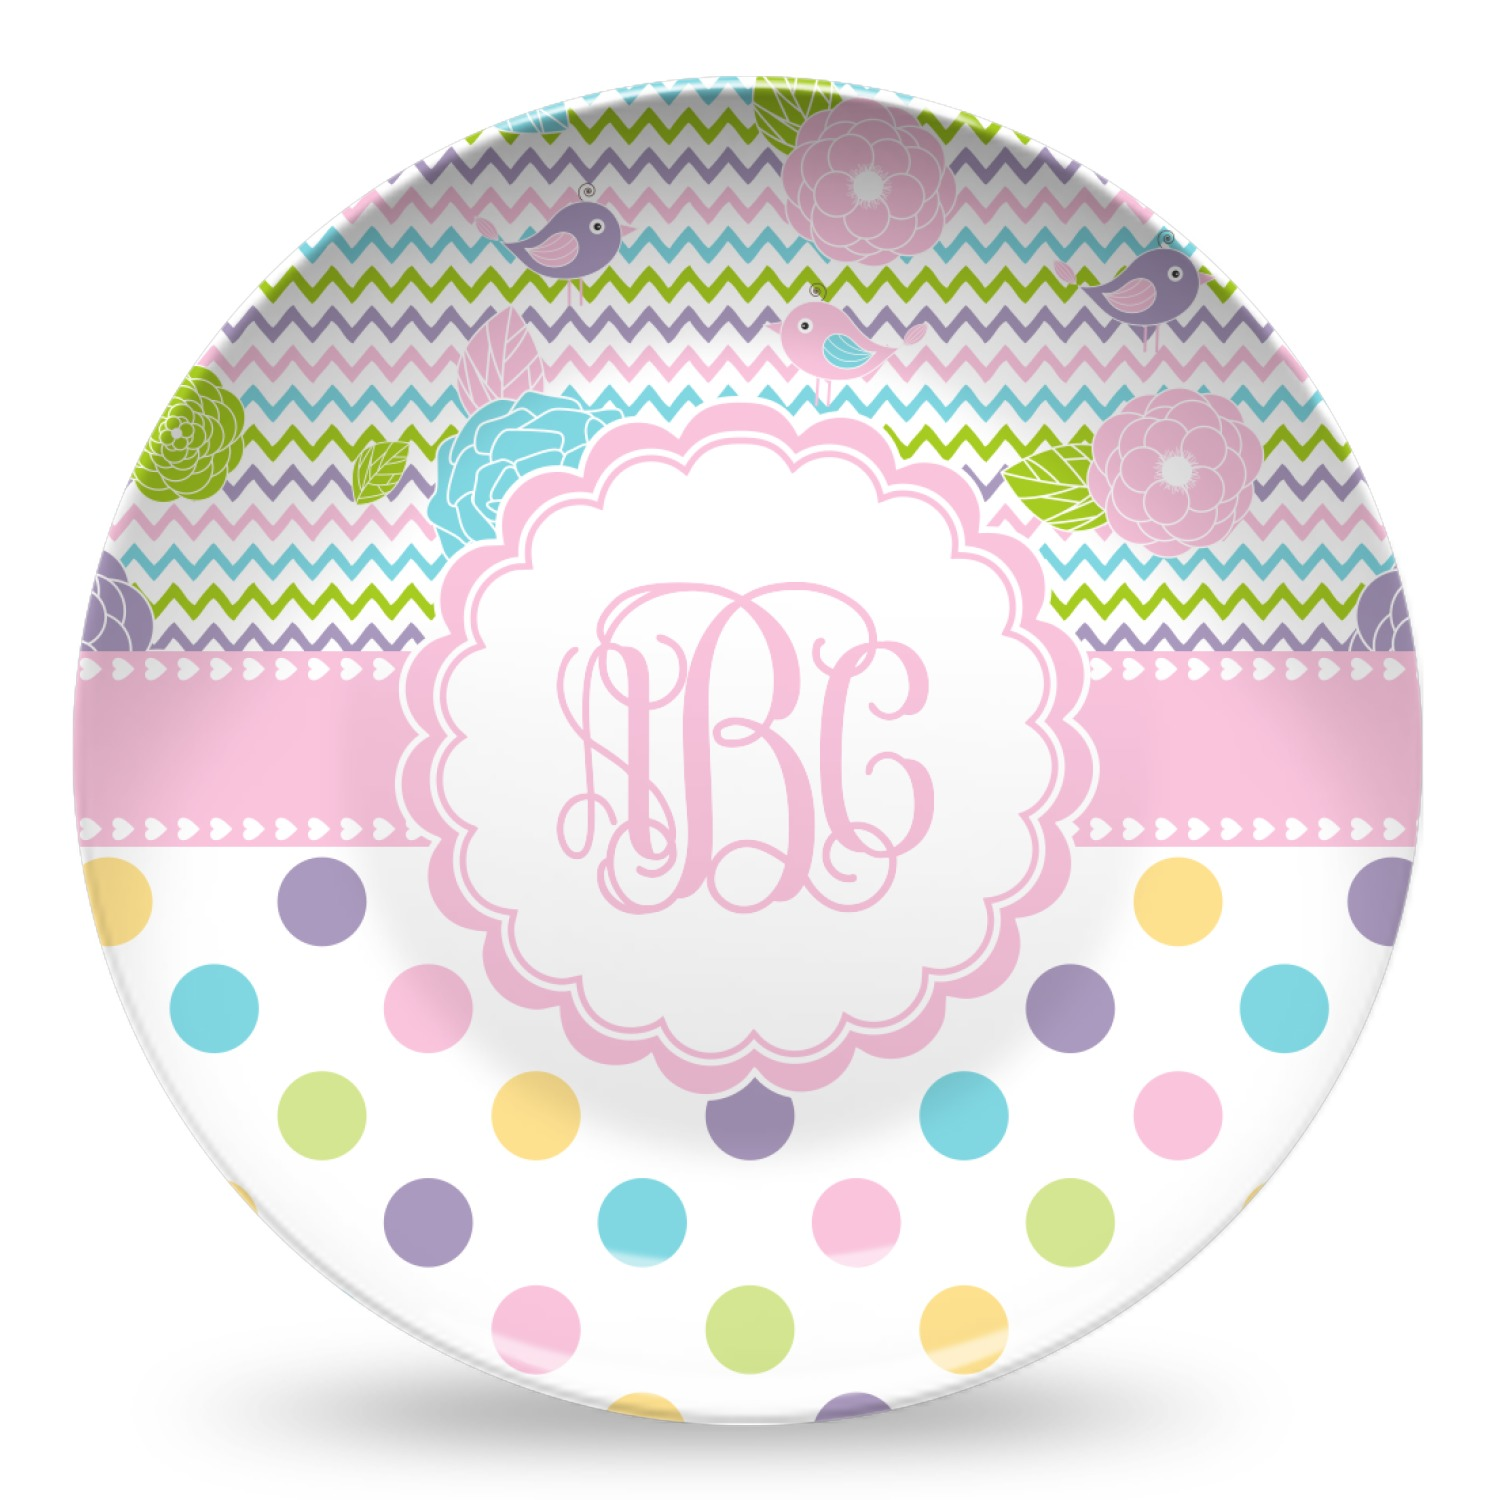 Microwave Plate Girly Girl Microwave Safe Plastic Plate Composite Polymer Personalized